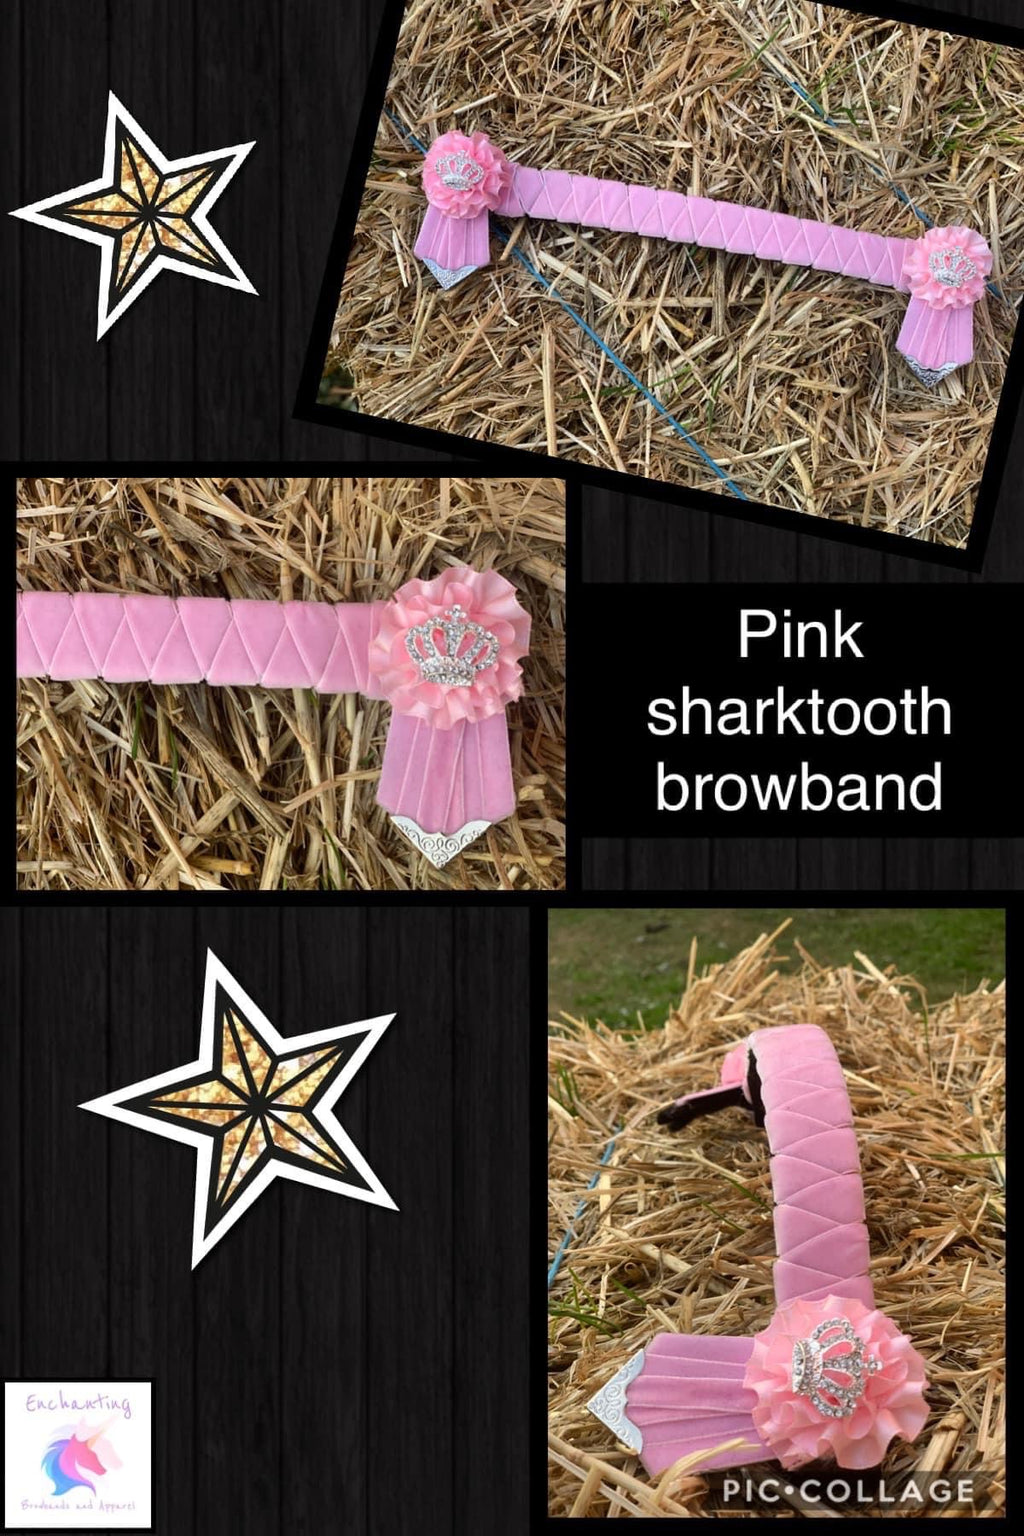 Light pink shark tooth style browband